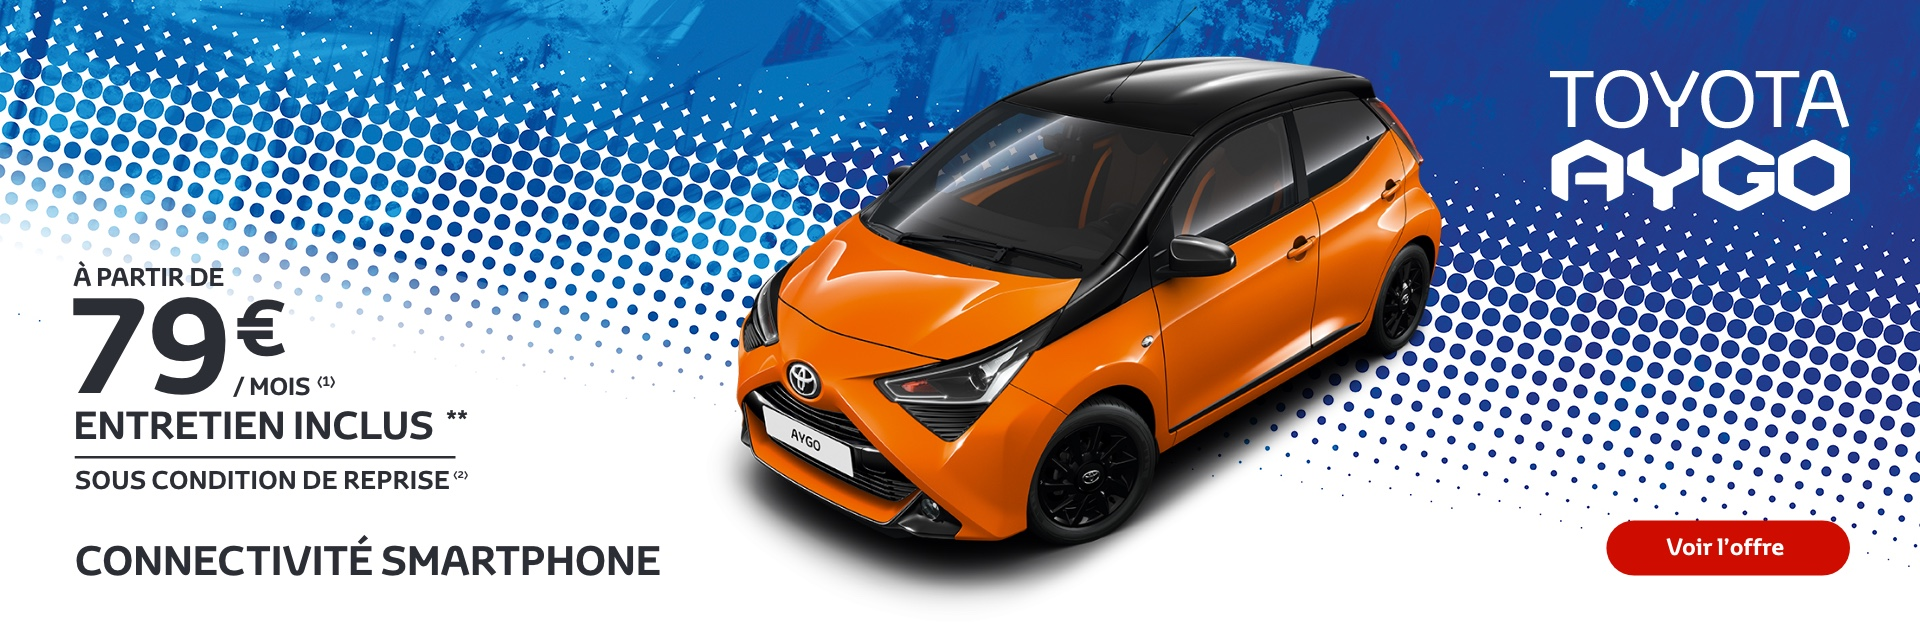 photo aygo concession toyota vallee crancey